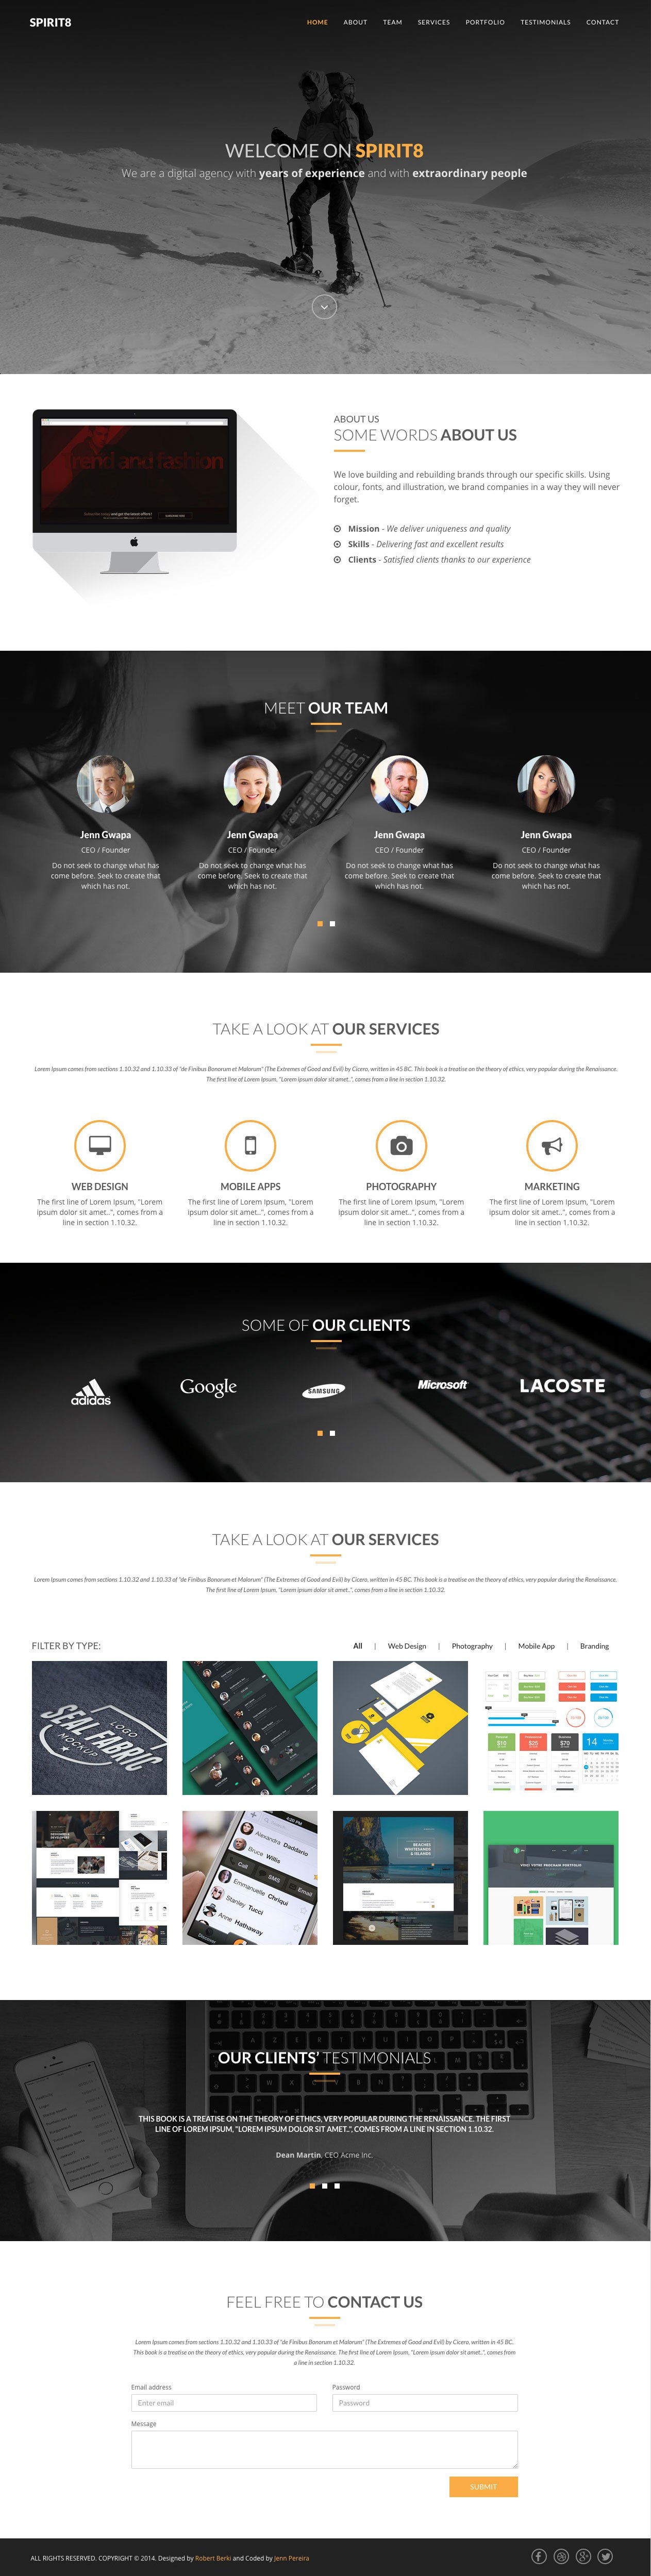 Spirit8 – Bootstrap HTML template Free | bootstrap themes ...